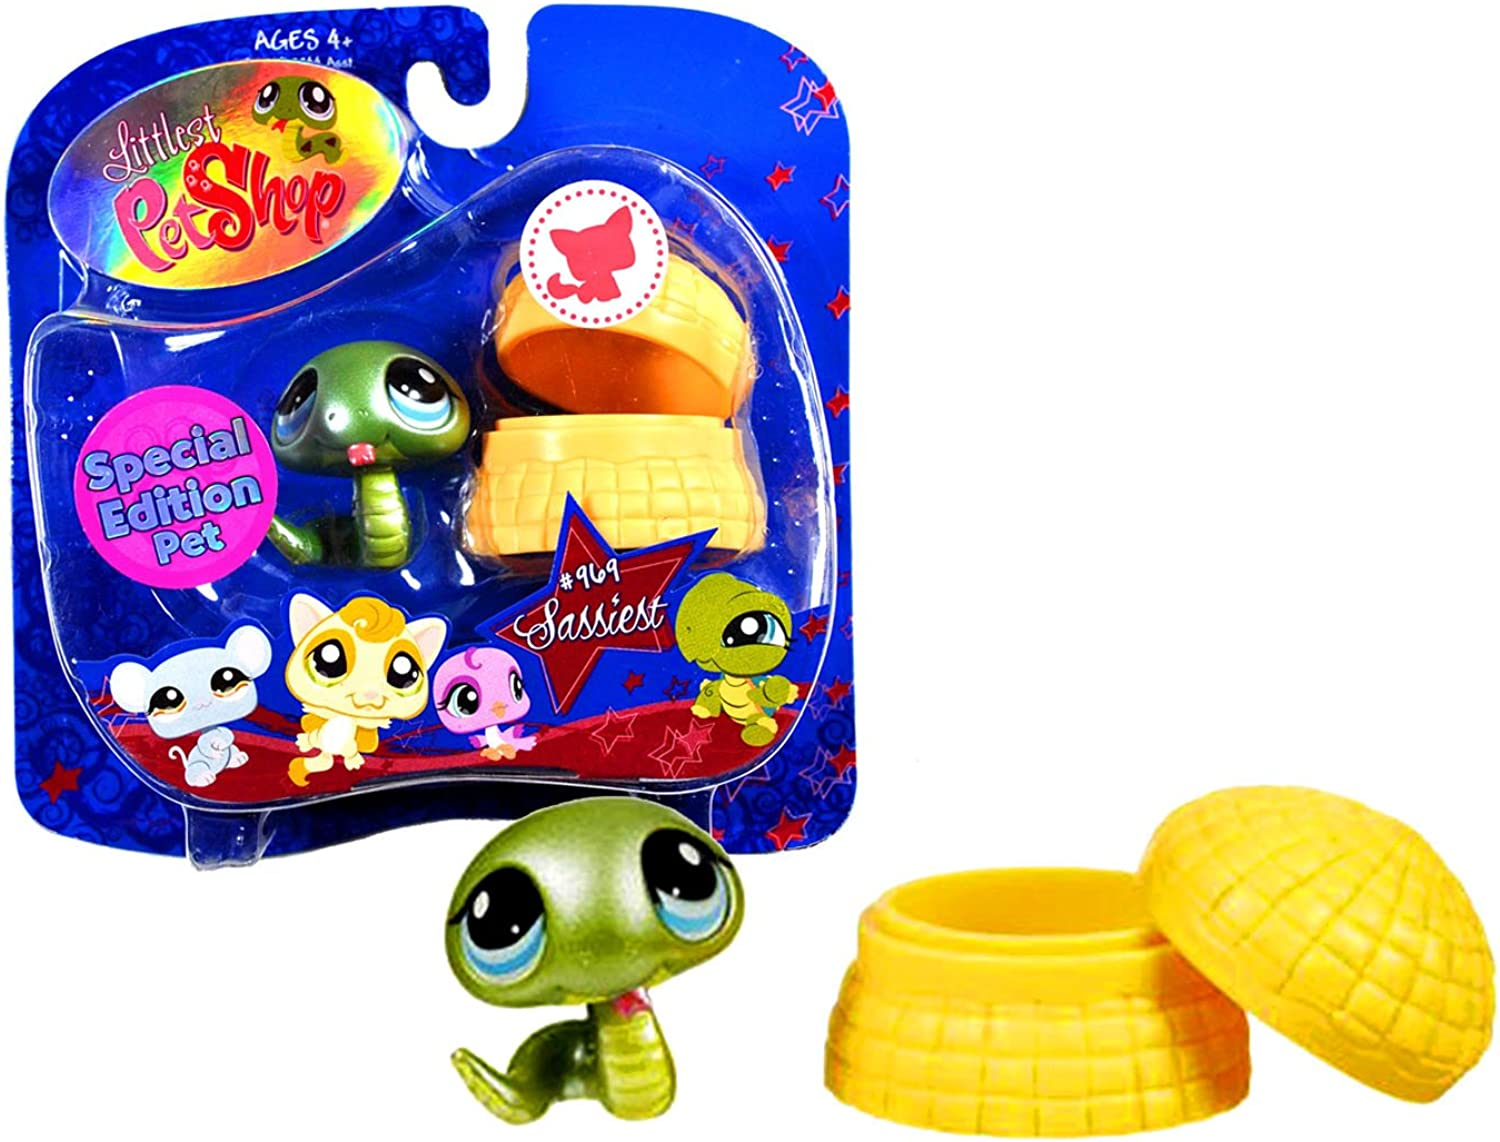 Hasbro Year 2008 Littlest Pet Shop Portable Pets Special Edition Pet  Sassiest Series Collectible Bobble Head Pet Figure Set  969  Green Snake with Basket (91839) by Littlest Pet Shop